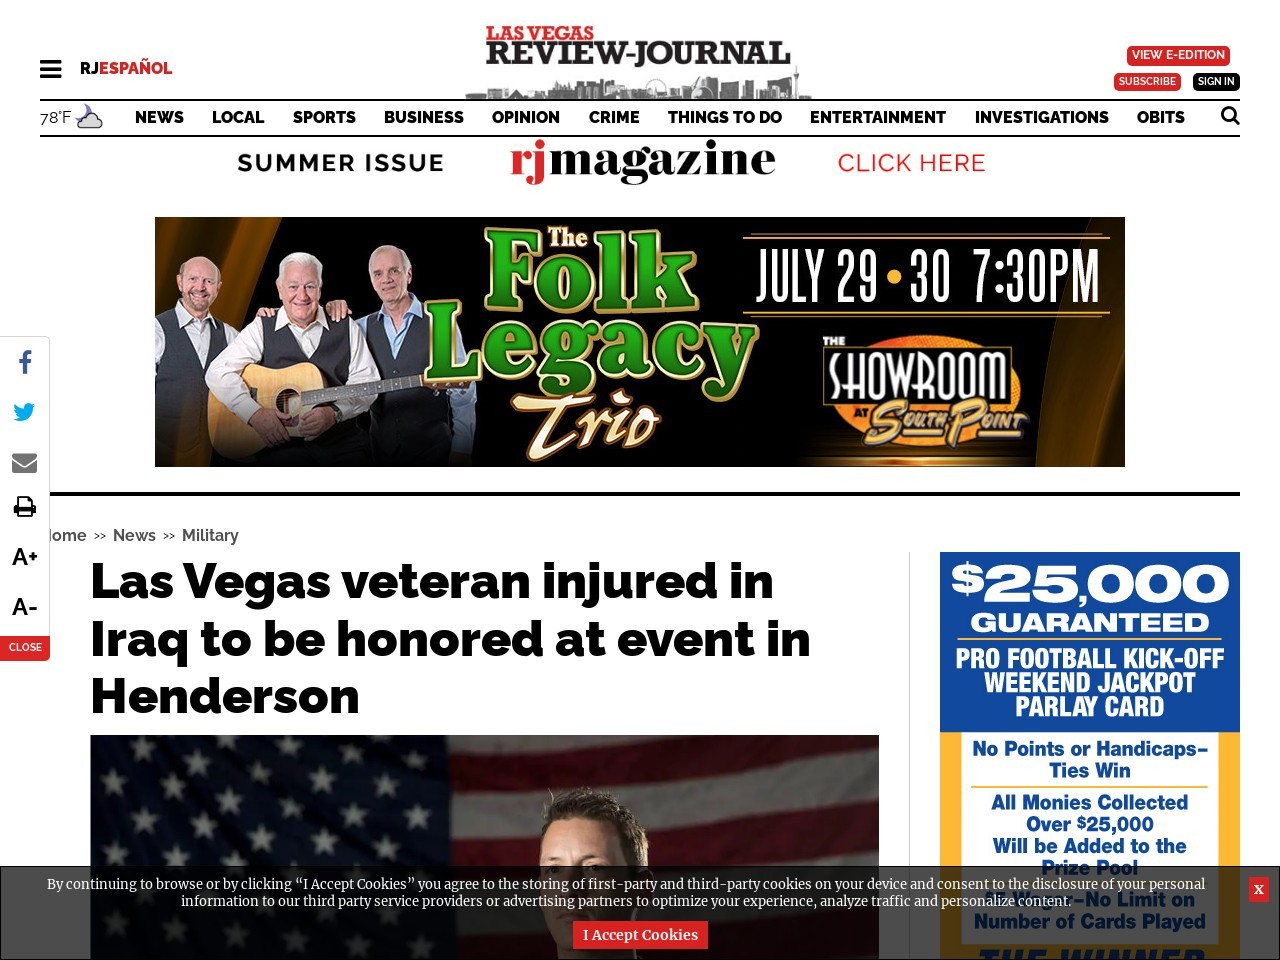 Las Vegas veteran injured in Iraq to be honored at event in Henderson